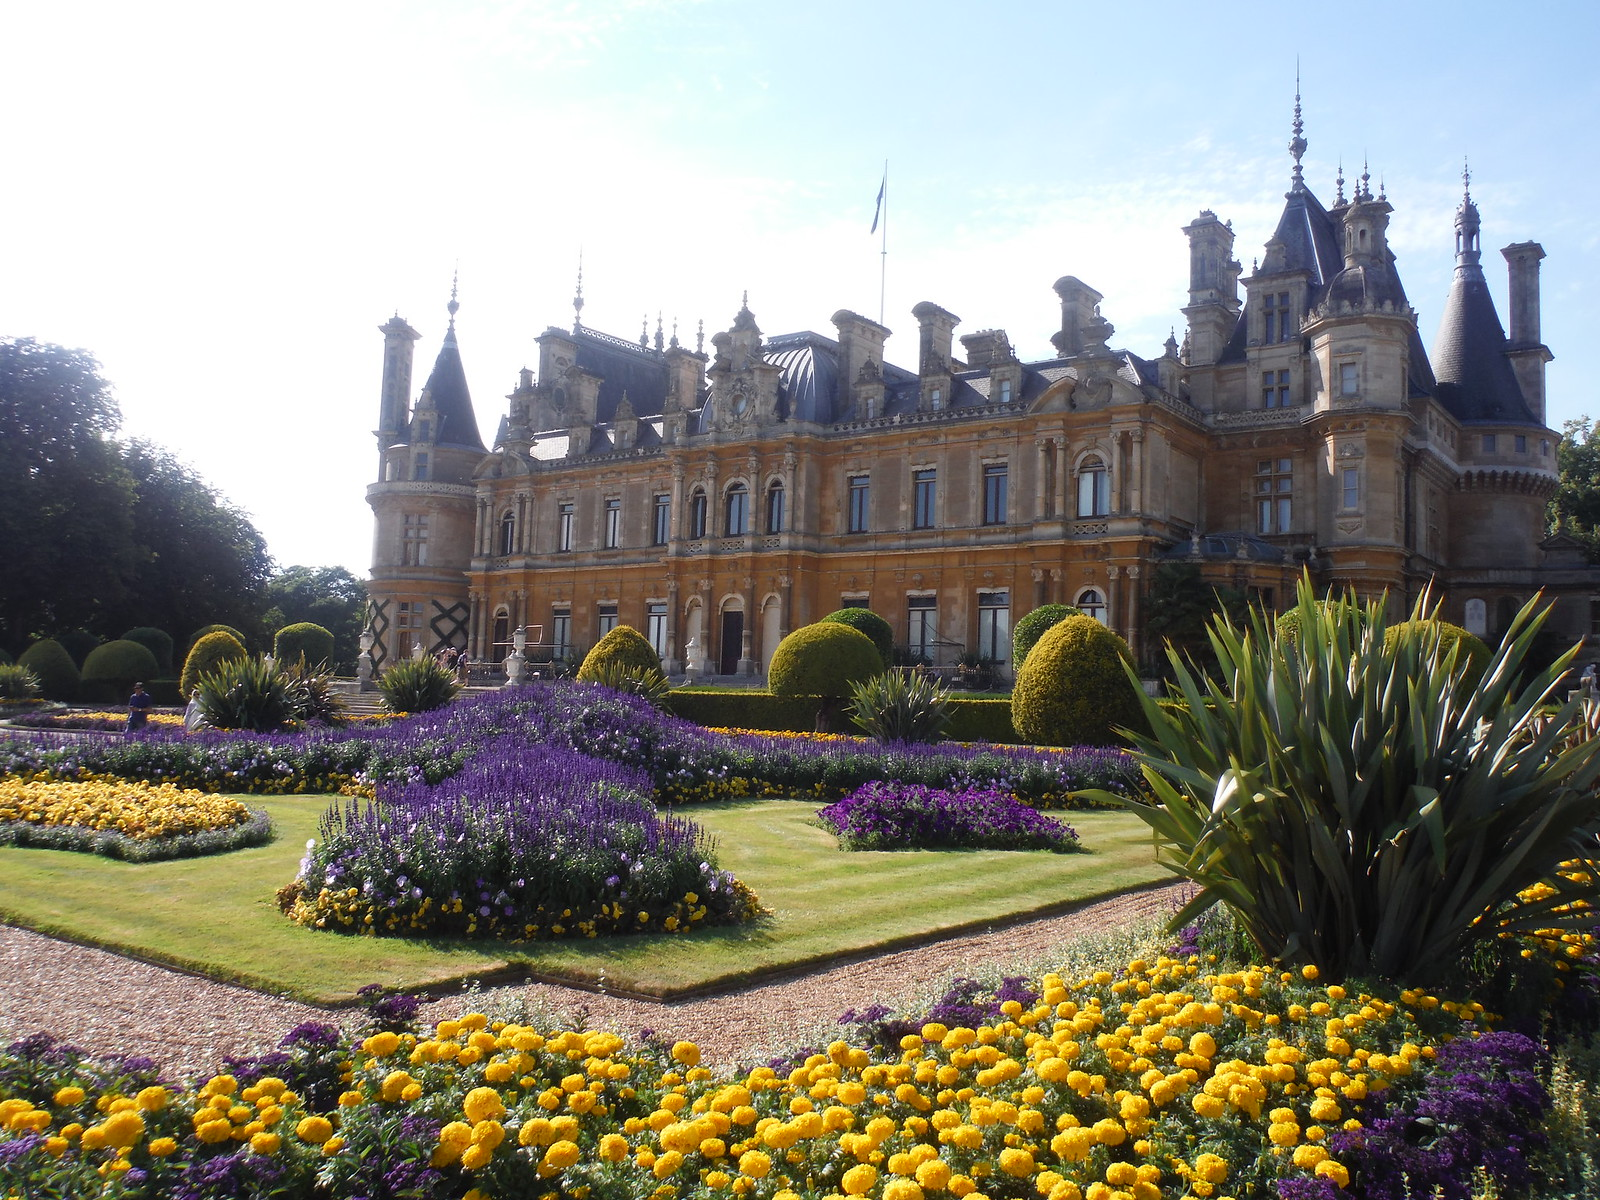 Waddesdon Manor, from Gardens SWC 192 Haddenham to Aylesbury (via Waddesdon)